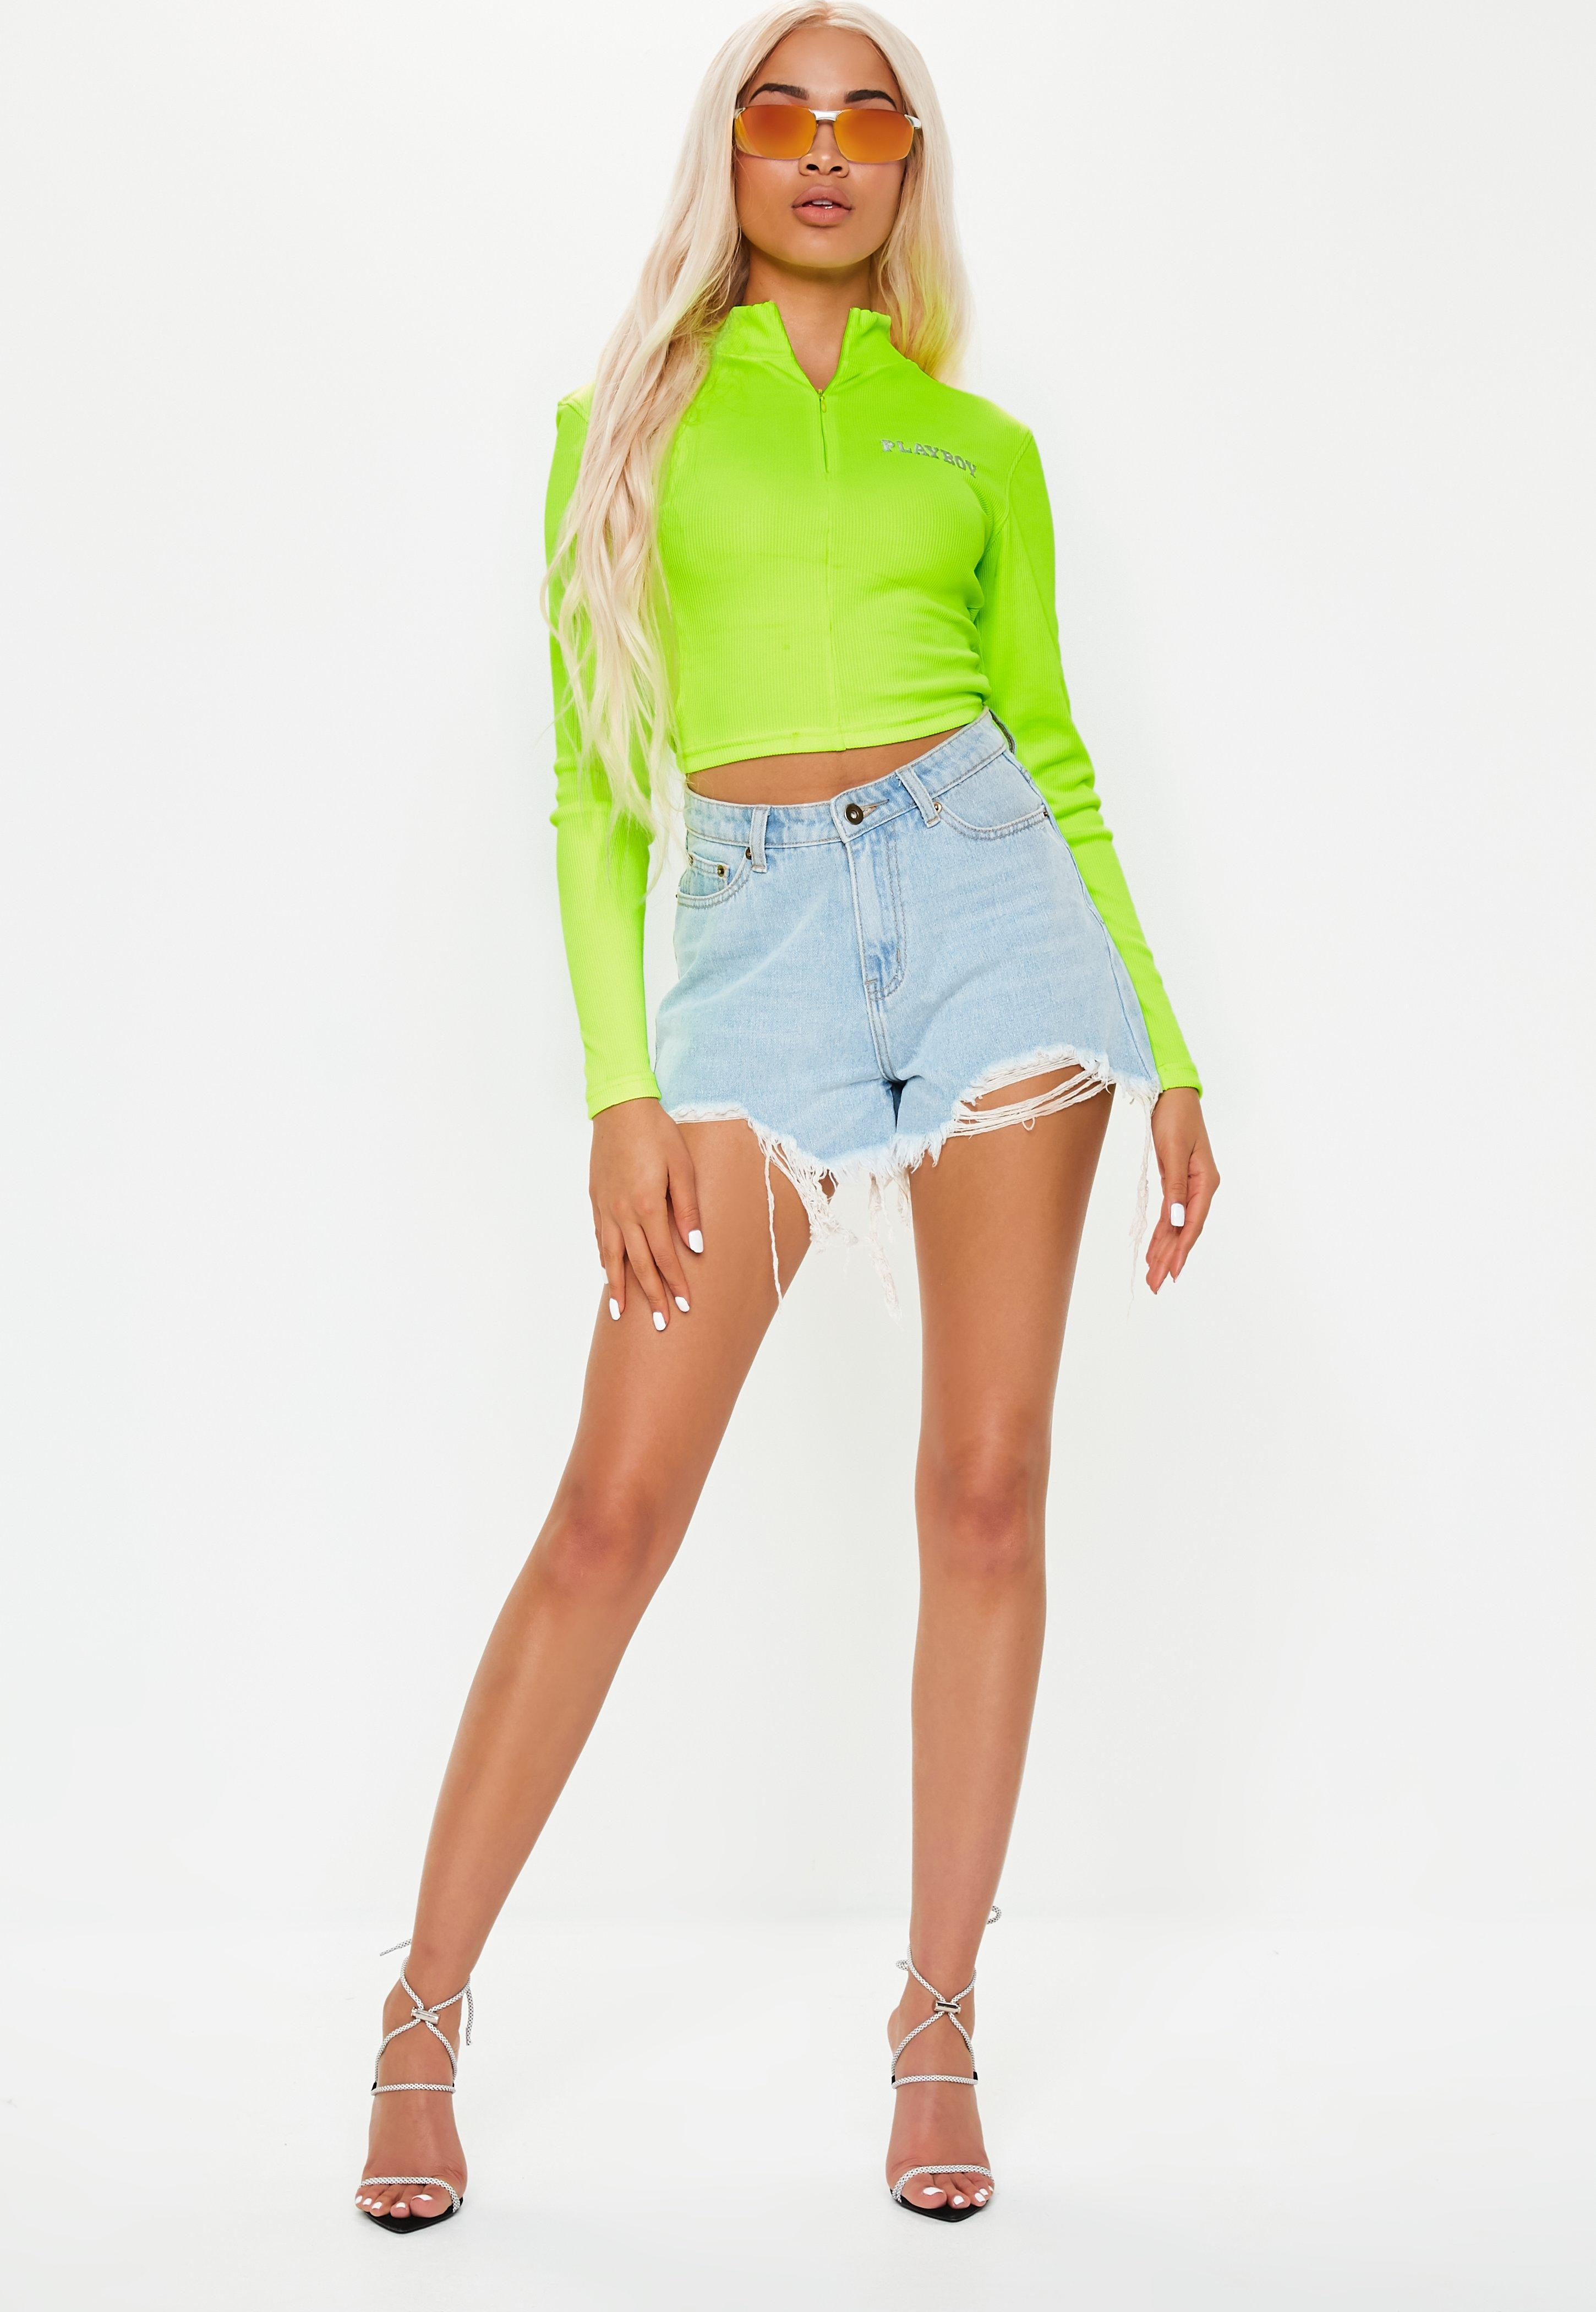 8fe07d1a93 Missguided Playboy X Lime Ribbed Crop Top in Green - Lyst